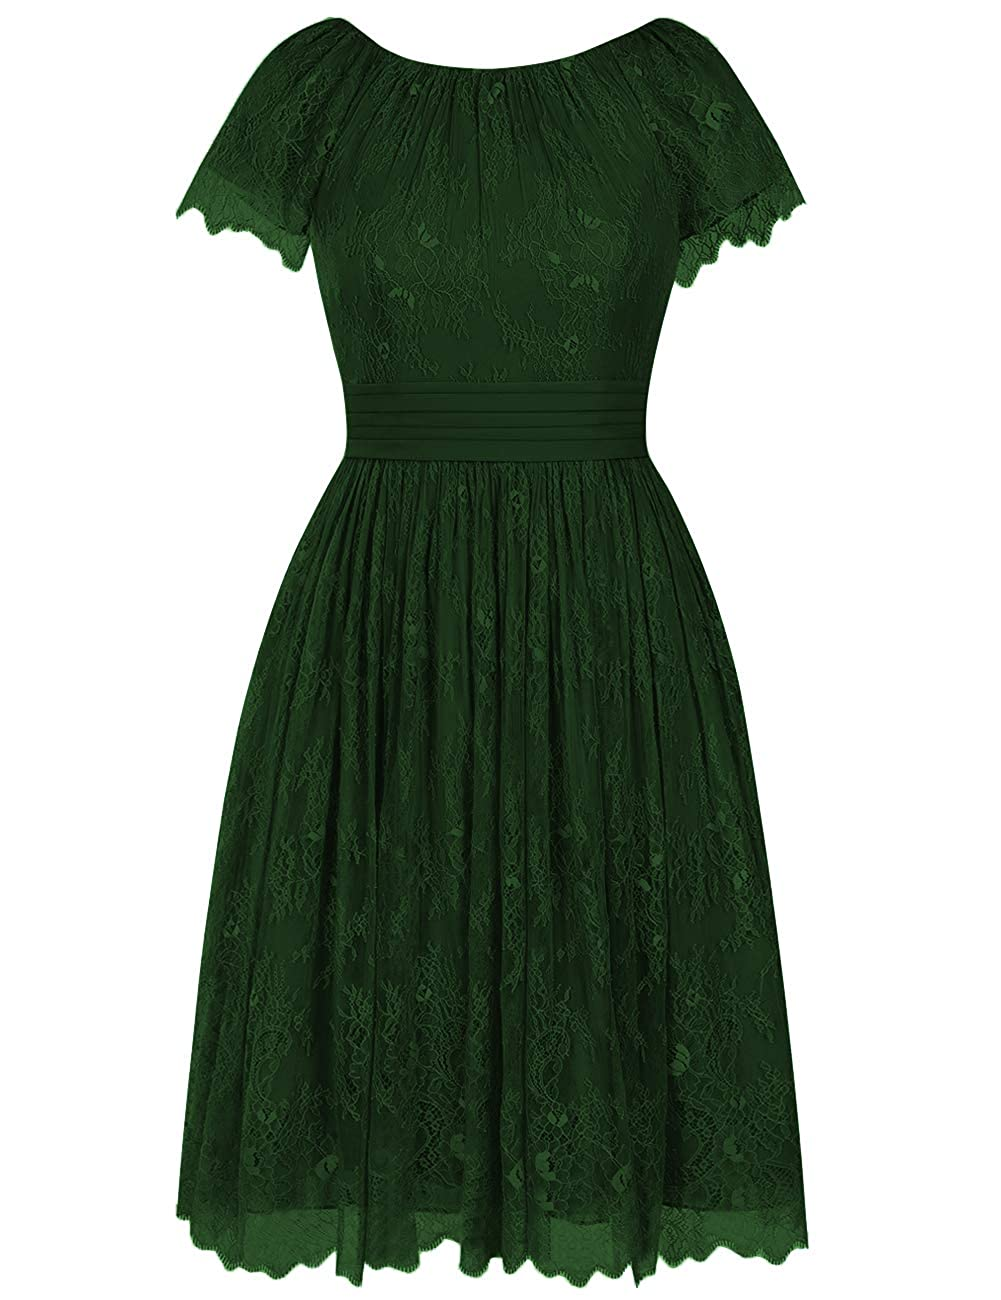 Dark_green Short Bridesmaid Dresses Flora Lace Cocktail Prom Gowns Homecoming Formal Party Dress